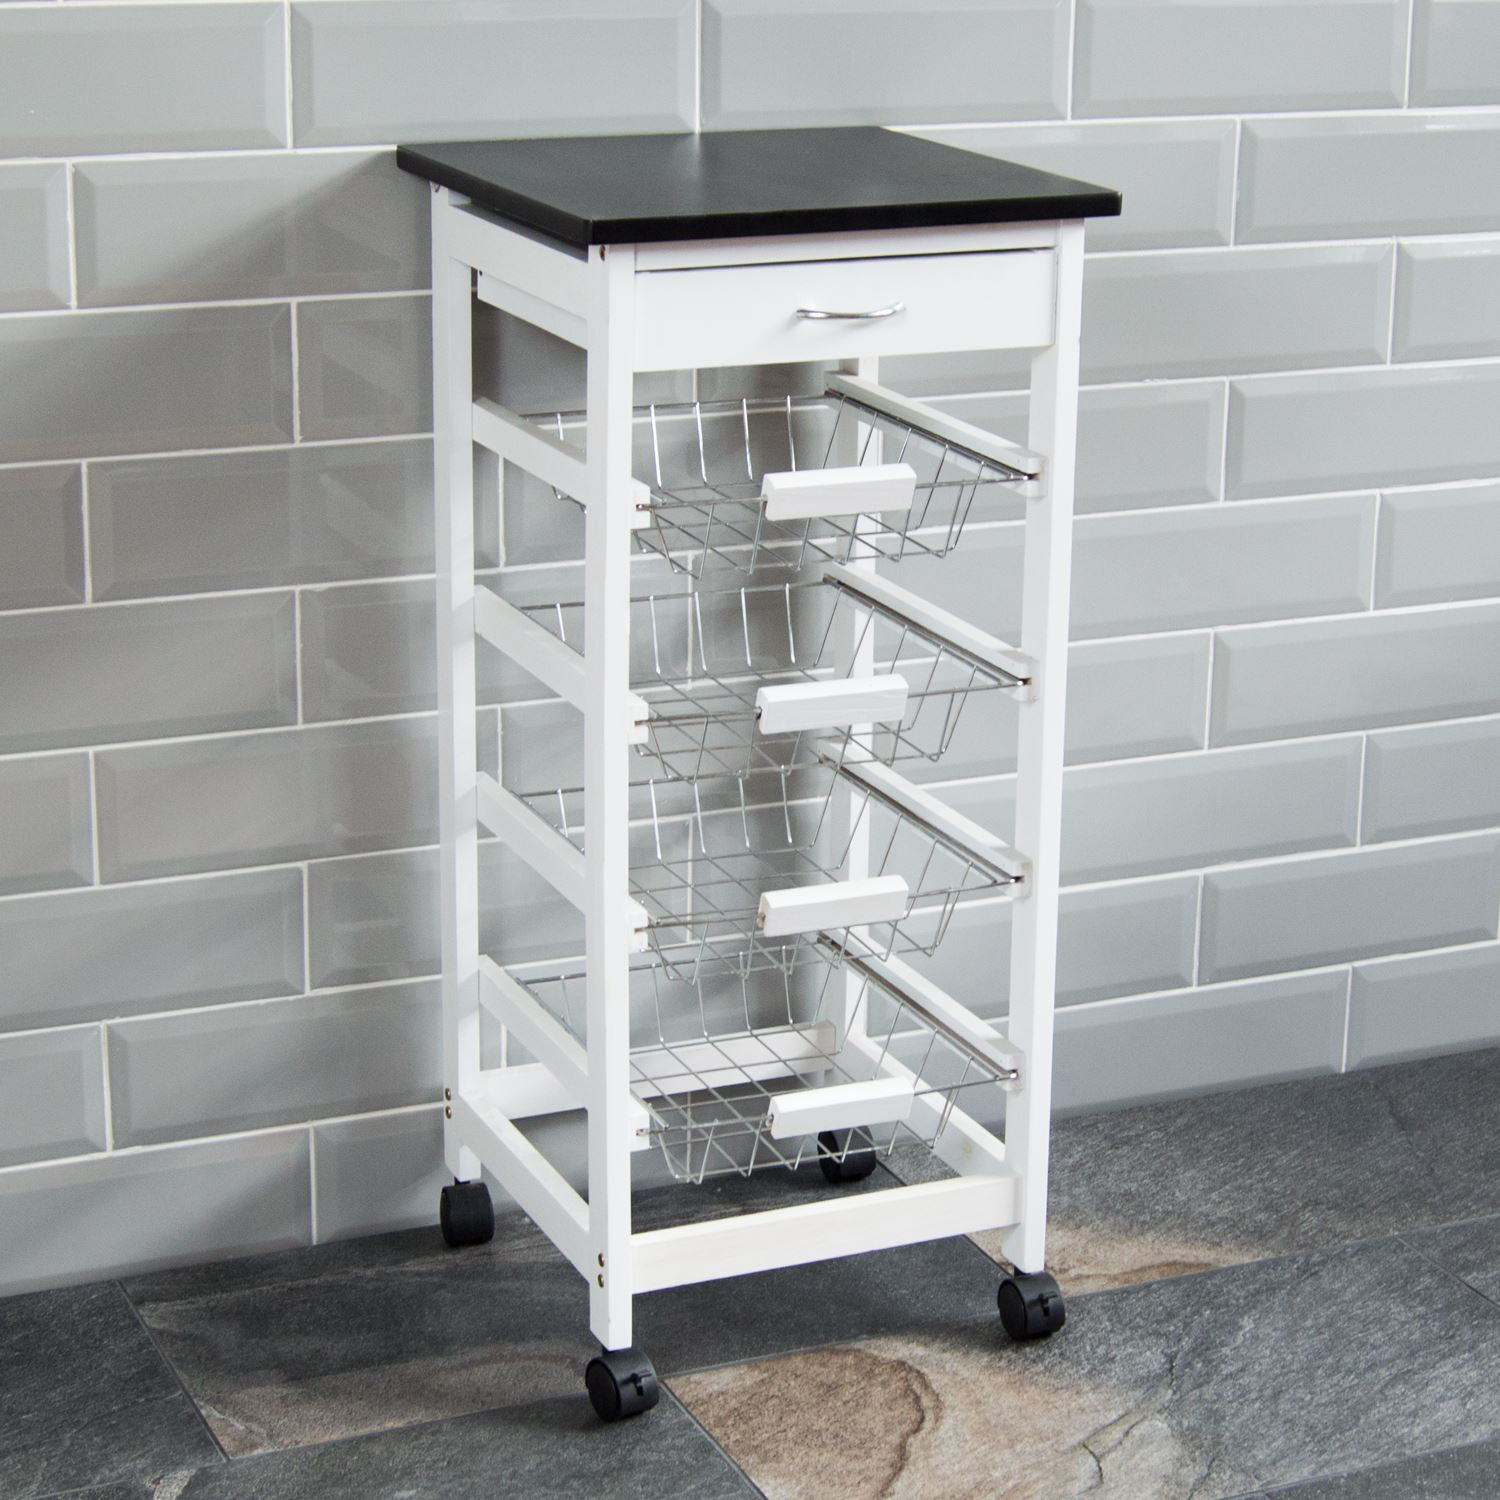 4 tier kitchen trolley white wooden cart basket storage drawer by home discount ebay - Kitchen cabinets trolleys pictures ...